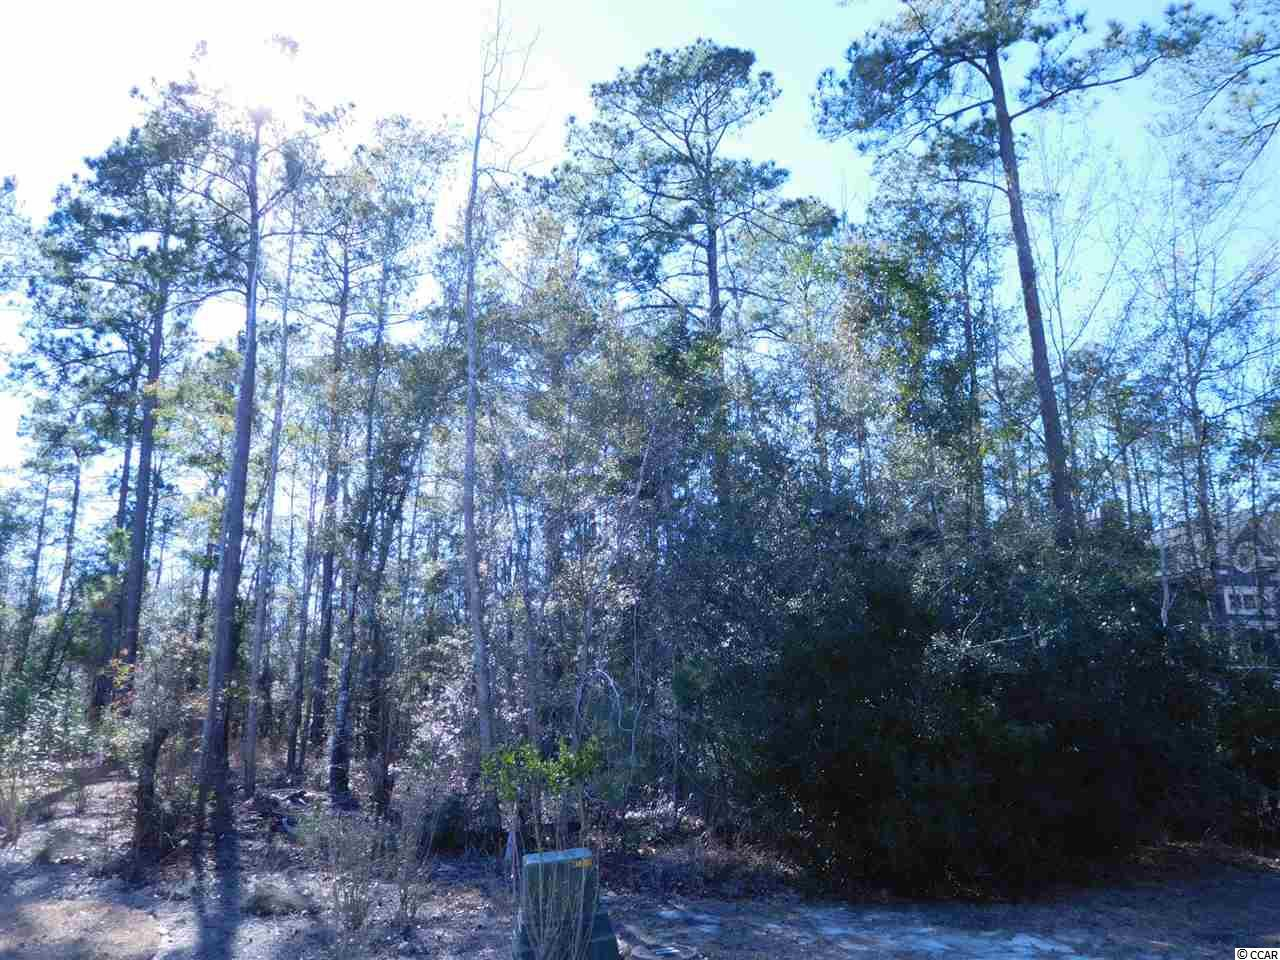 Half acre wooded homesite in a premier neighborhood which features access to the Waccamaw River and ICW. Access to the community boat ramp and amenity center is half a block away. This homesite backs up to a protected wooded wetland. This is a great place to build your custom dream home! Measurements are approximate and not guaranteed. Buyer is responsible for verification.